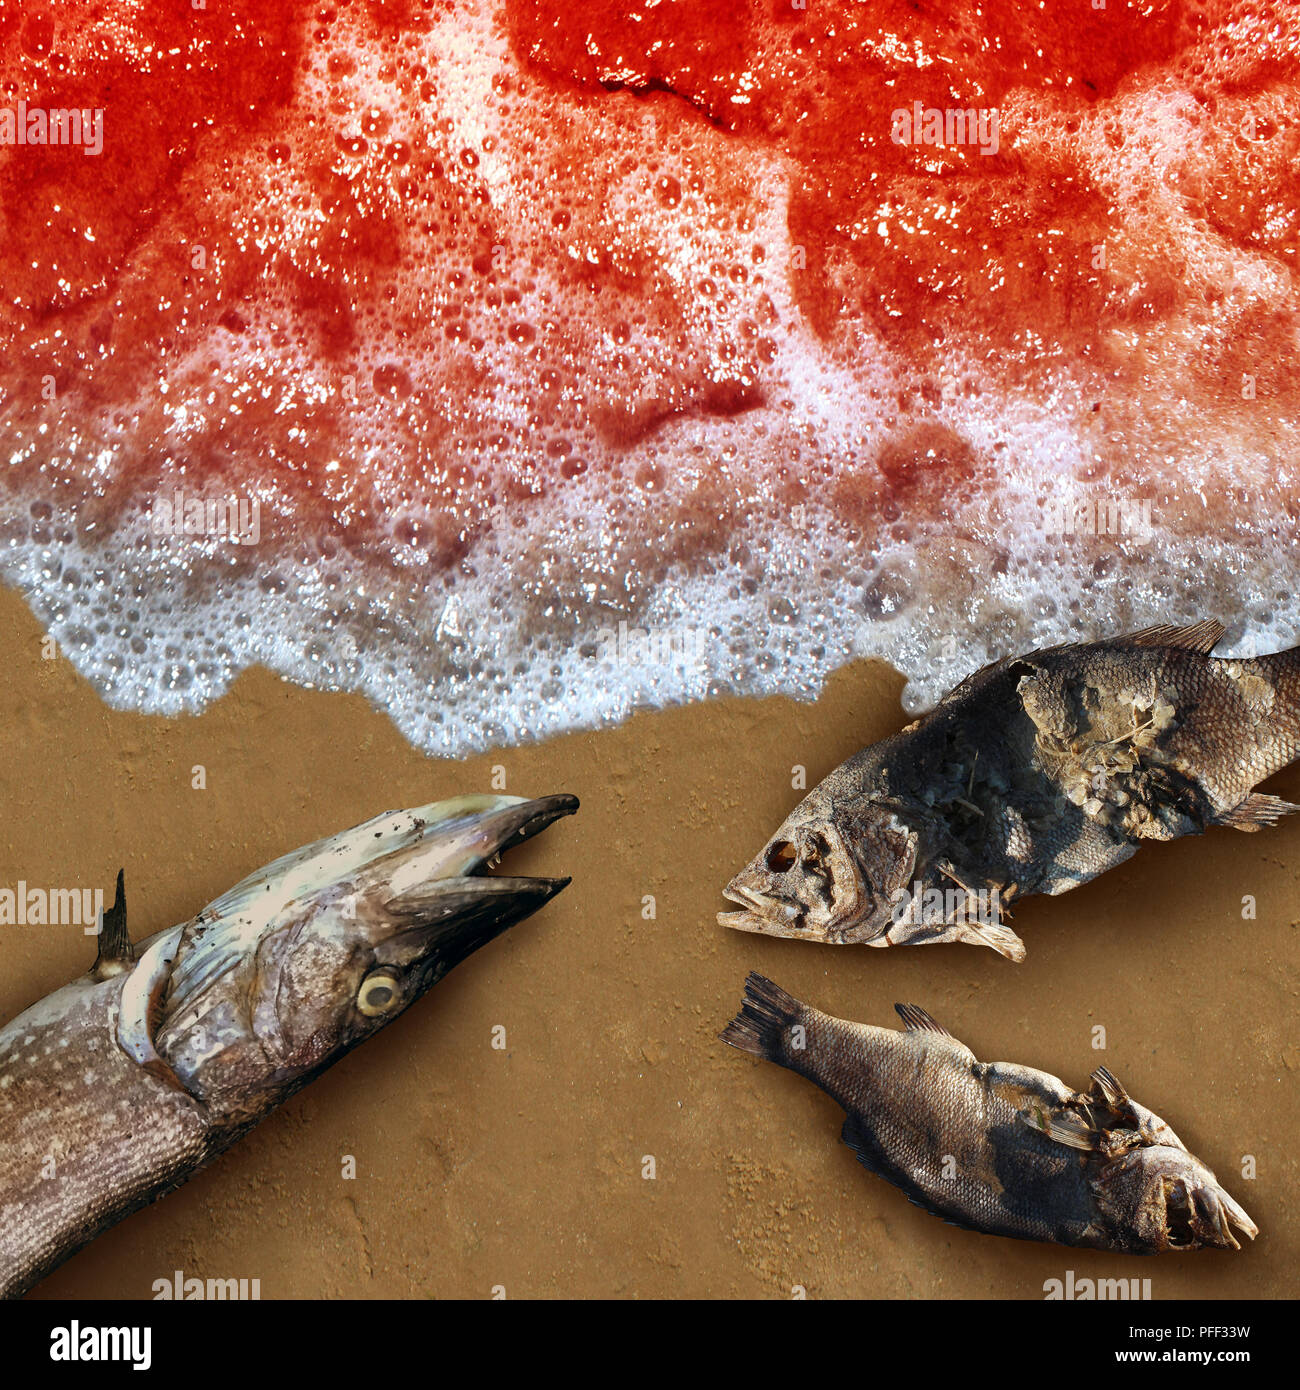 Red tide algae deadly natural toxin found in the ocean or sea as a marine life death concept as a conceptual in a 3D illustration style. - Stock Image